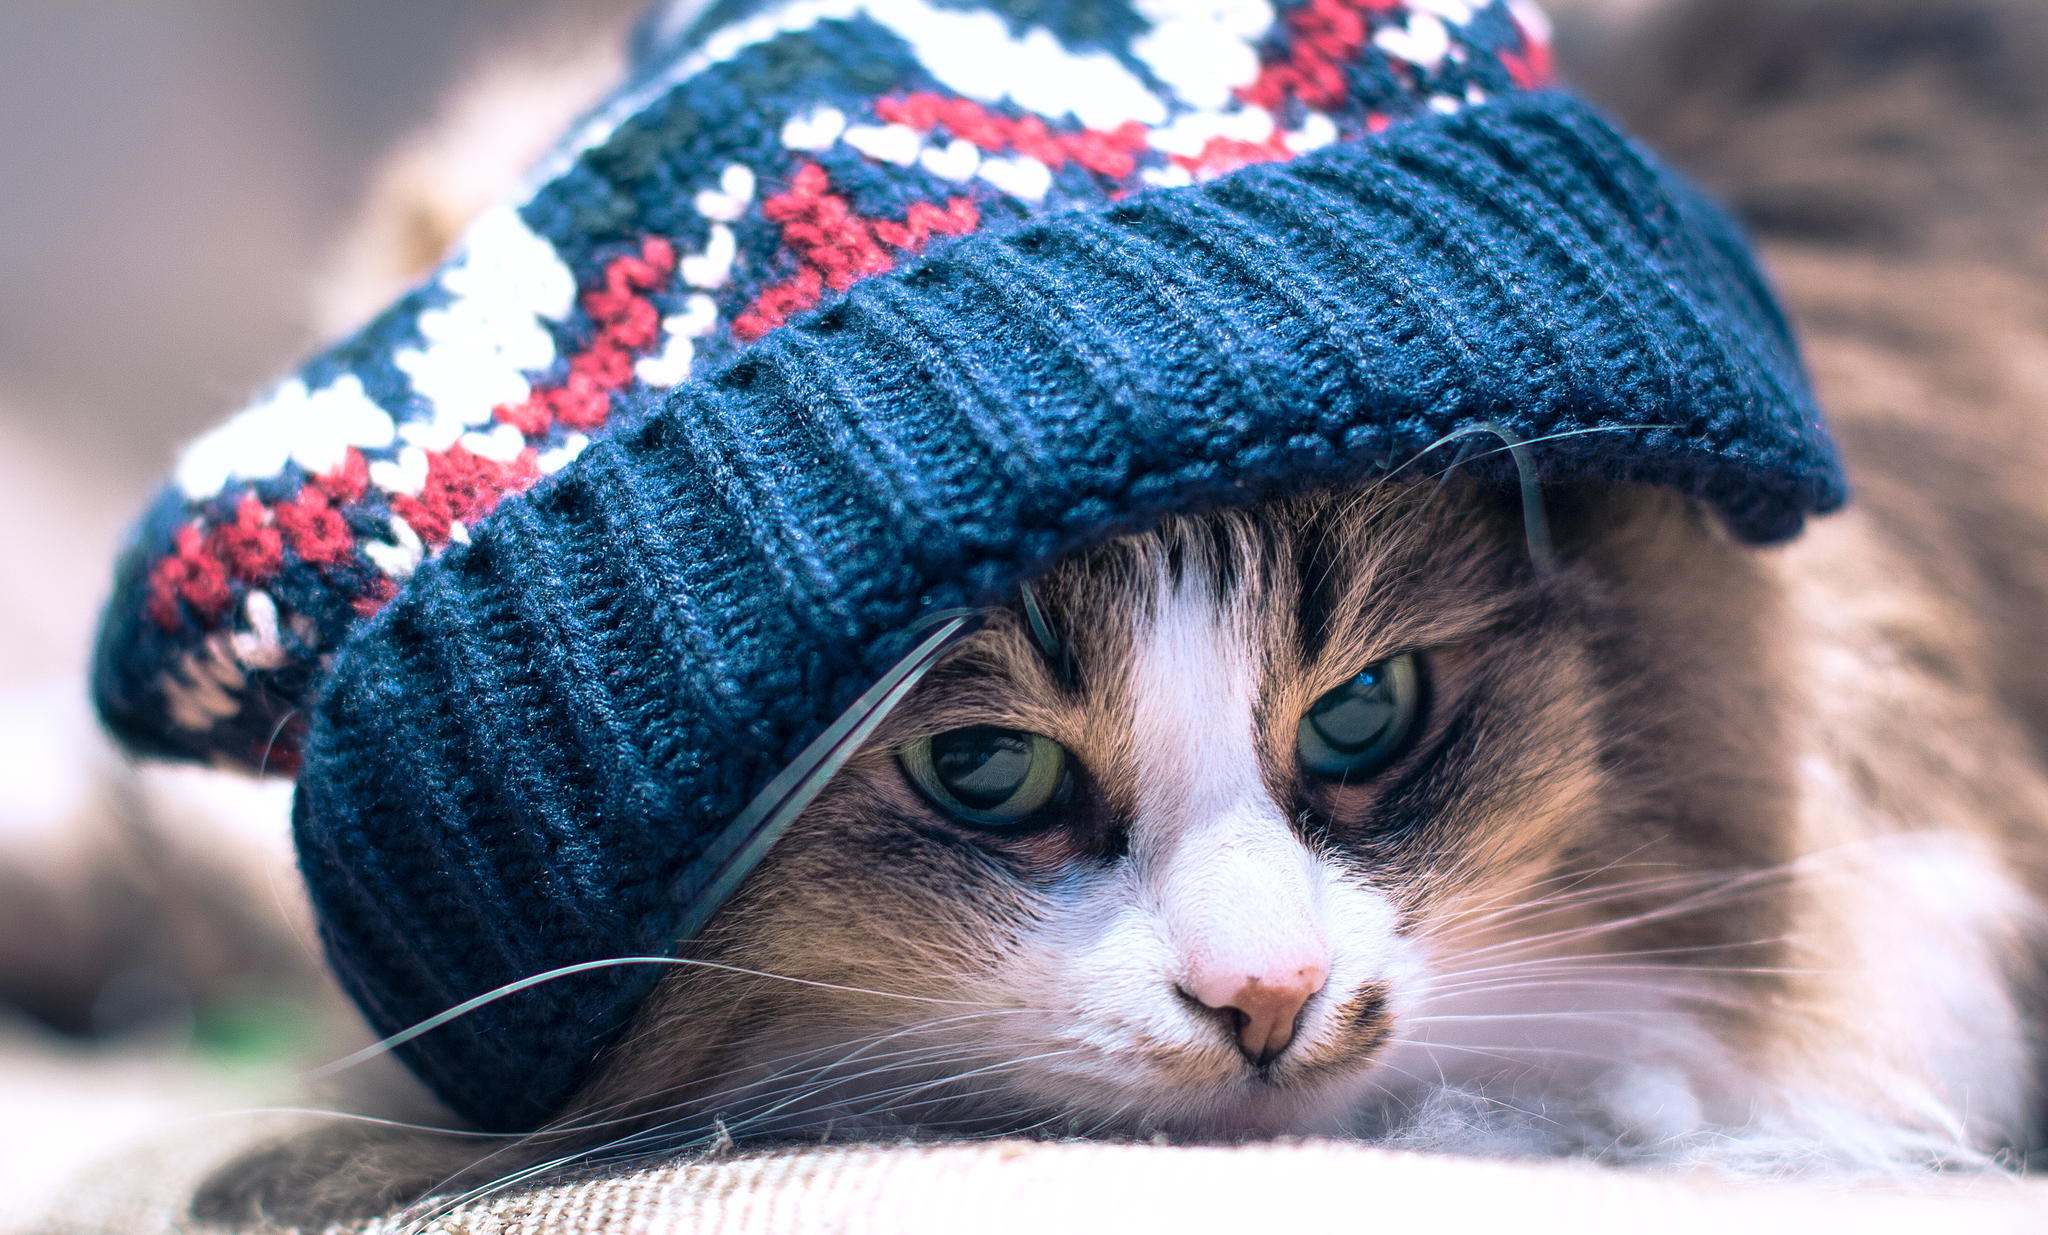 Cool Green Eyed Calico Color Cat Wearing Blue Wool Hat 2048x1235